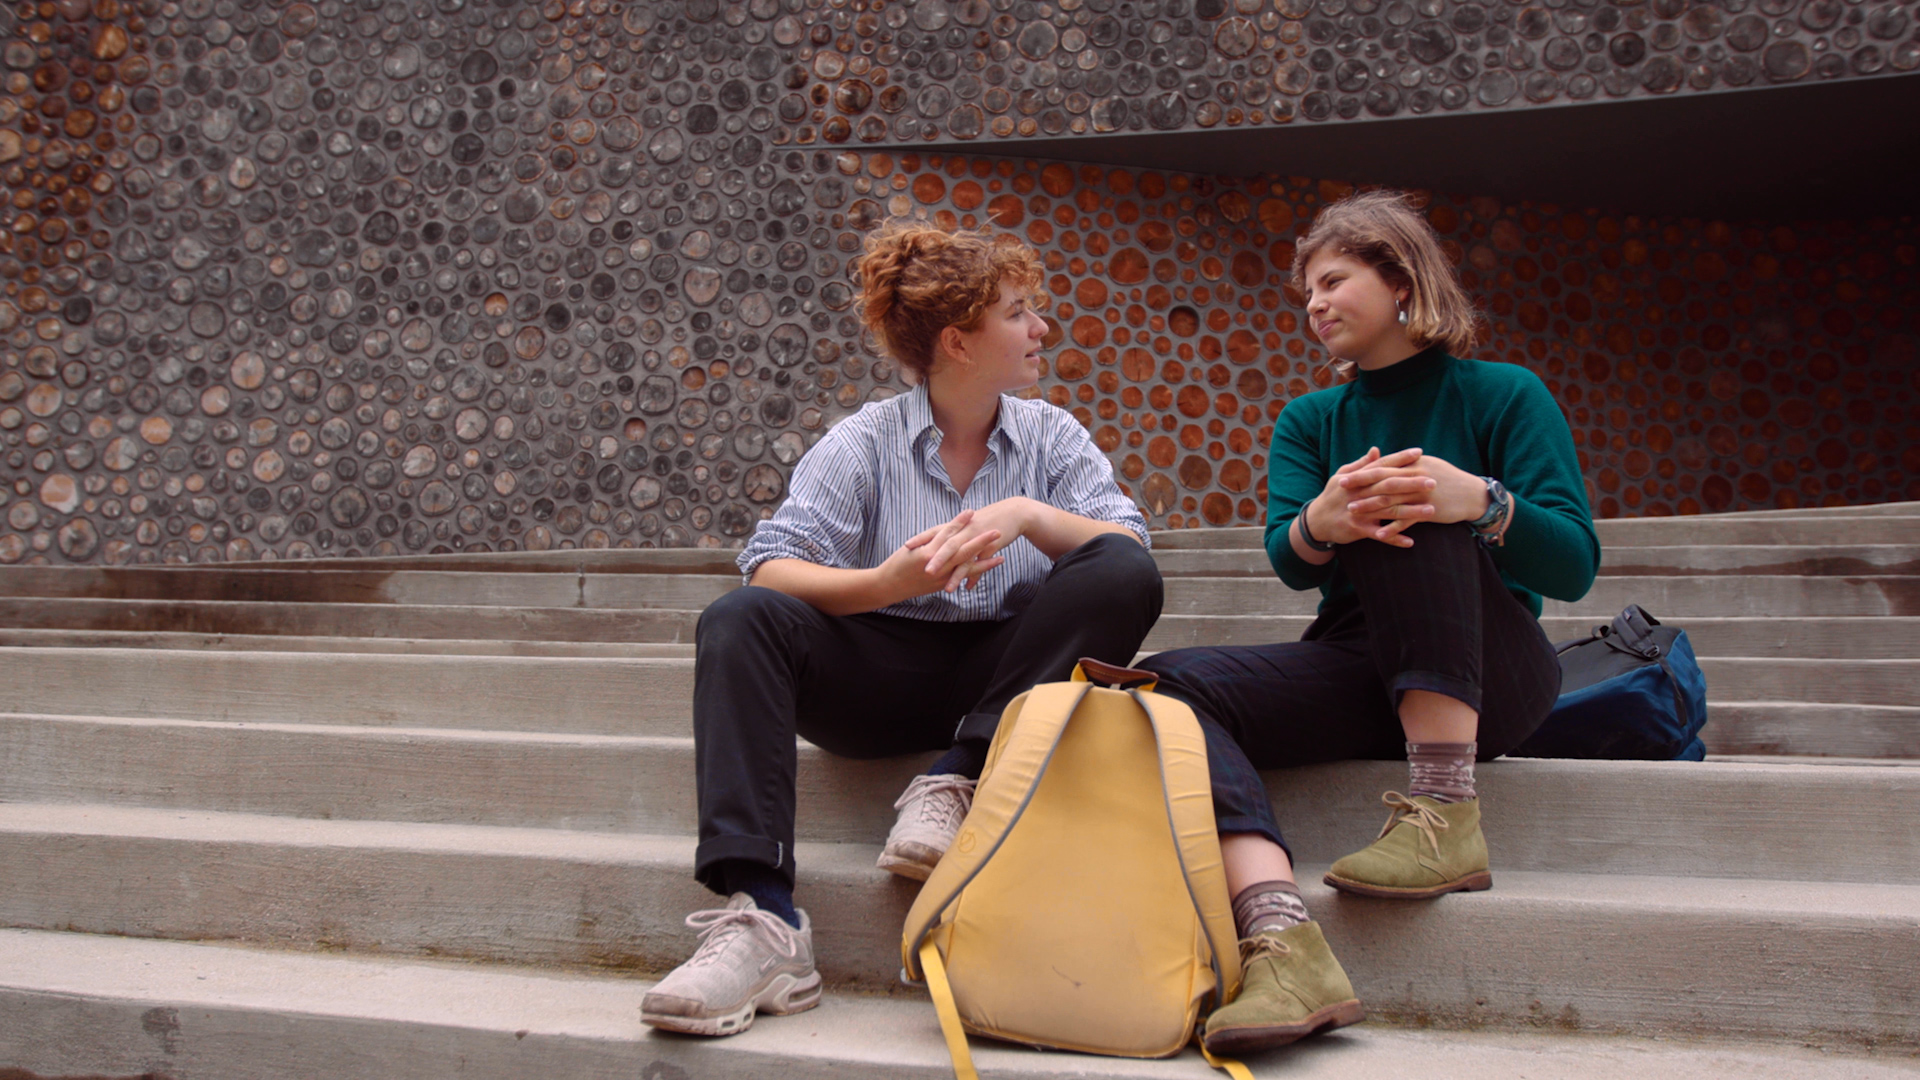 Two young college students sitting on stairs talking to each other.